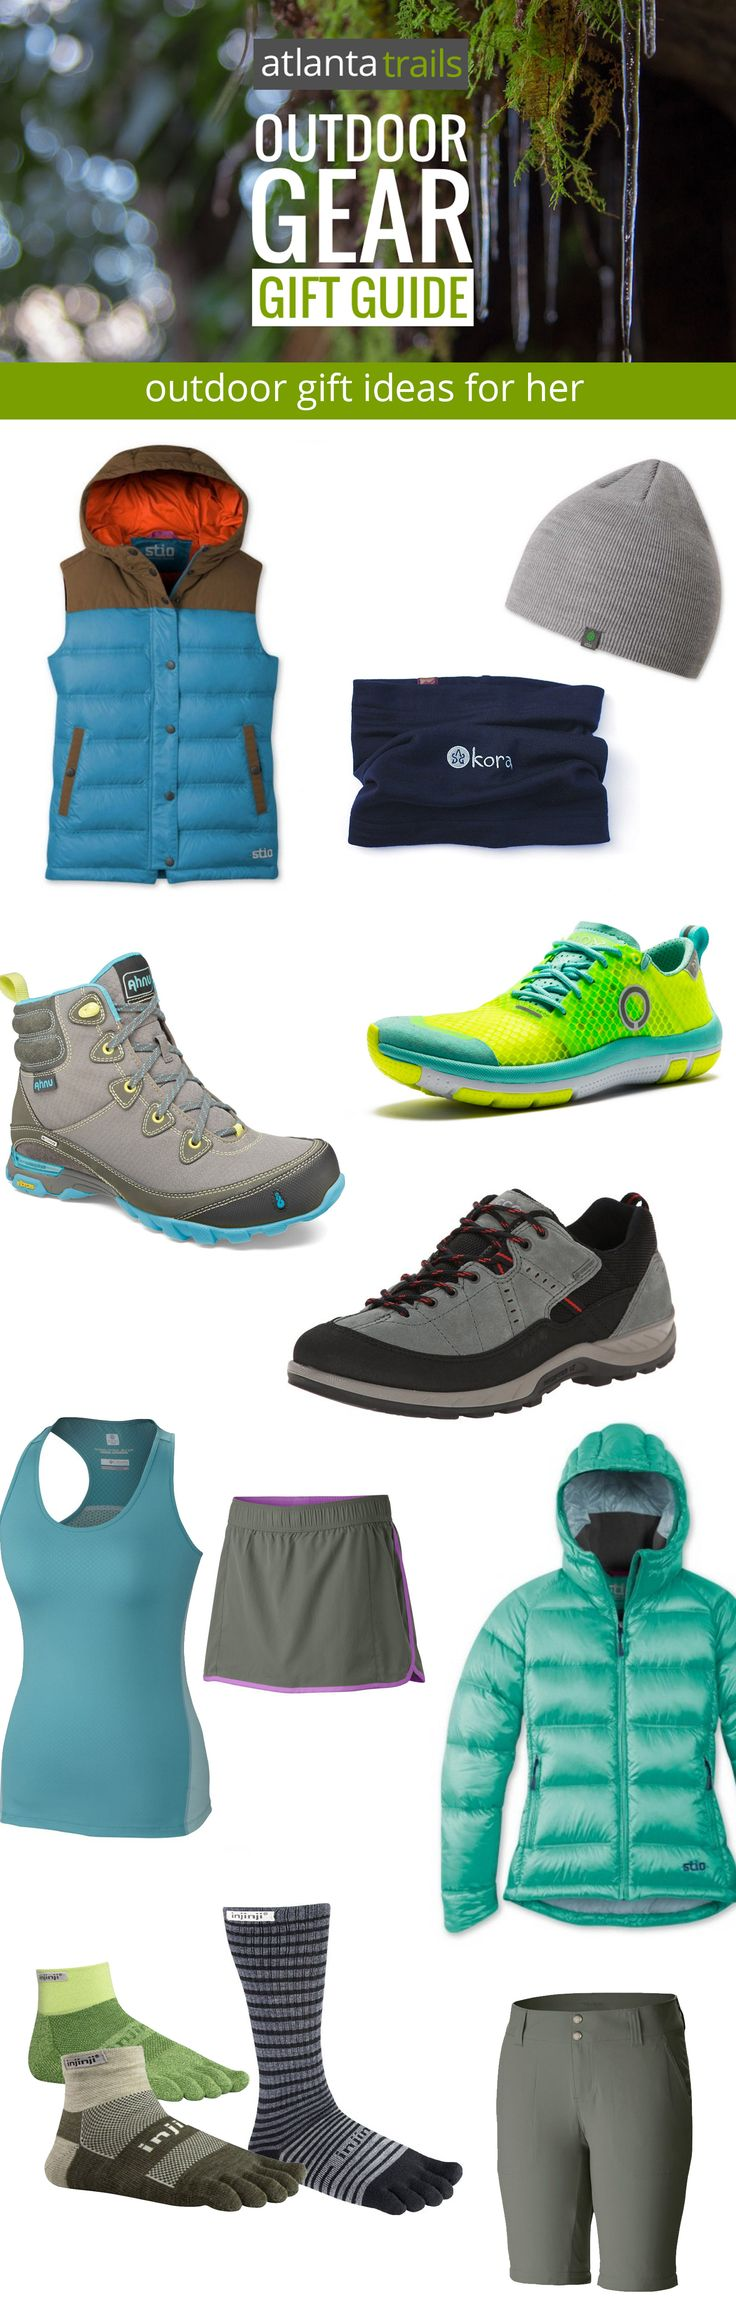 Looking for gift ideas for the runner, hiker or outdoor-loving lady on your list? Our women's outdoor clothing gift guide features our trail-tested favorite women's apparel, and the women's outdoor clothing gifts that top our own lists this year. @stio @ahnufootwear @skorarunning @eccoshoes @columbia1938 @injinji